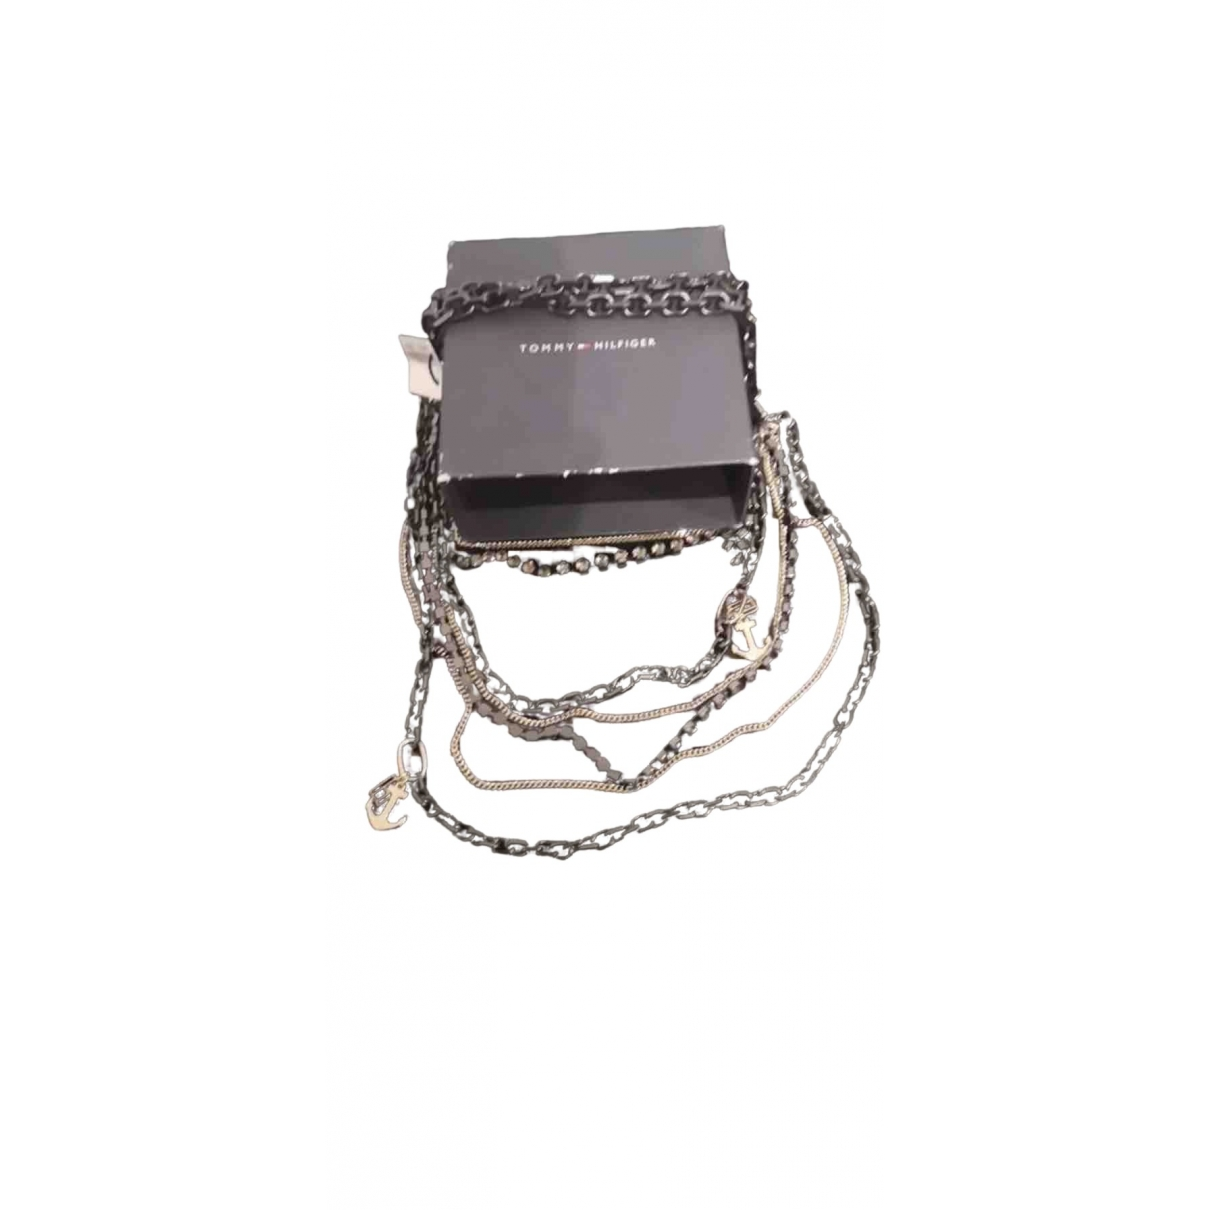 Tommy Hilfiger \N Anthracite Metal necklace for Women \N